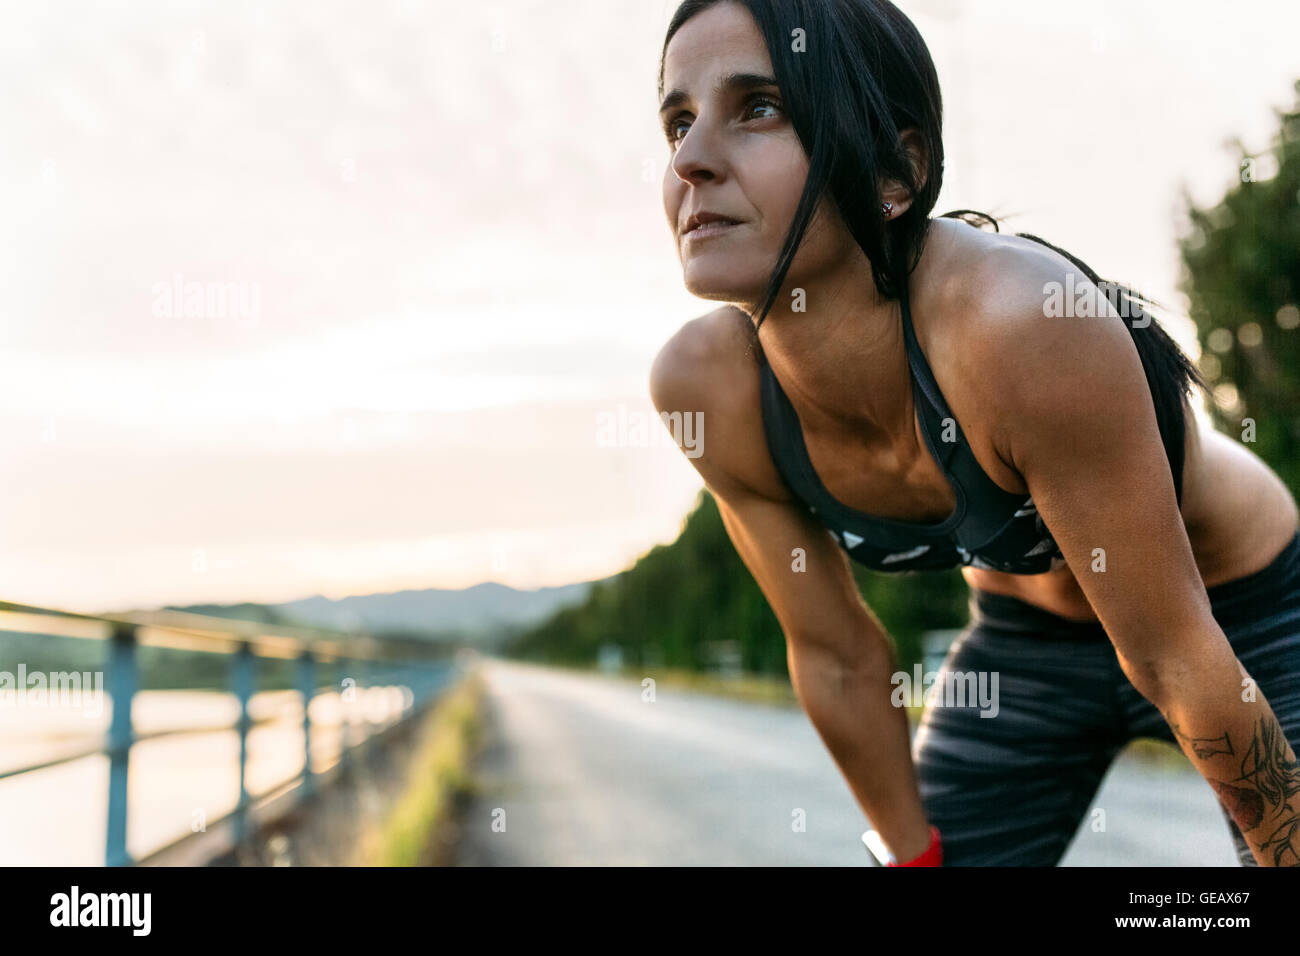 Woman taking a breather at training - Stock Image